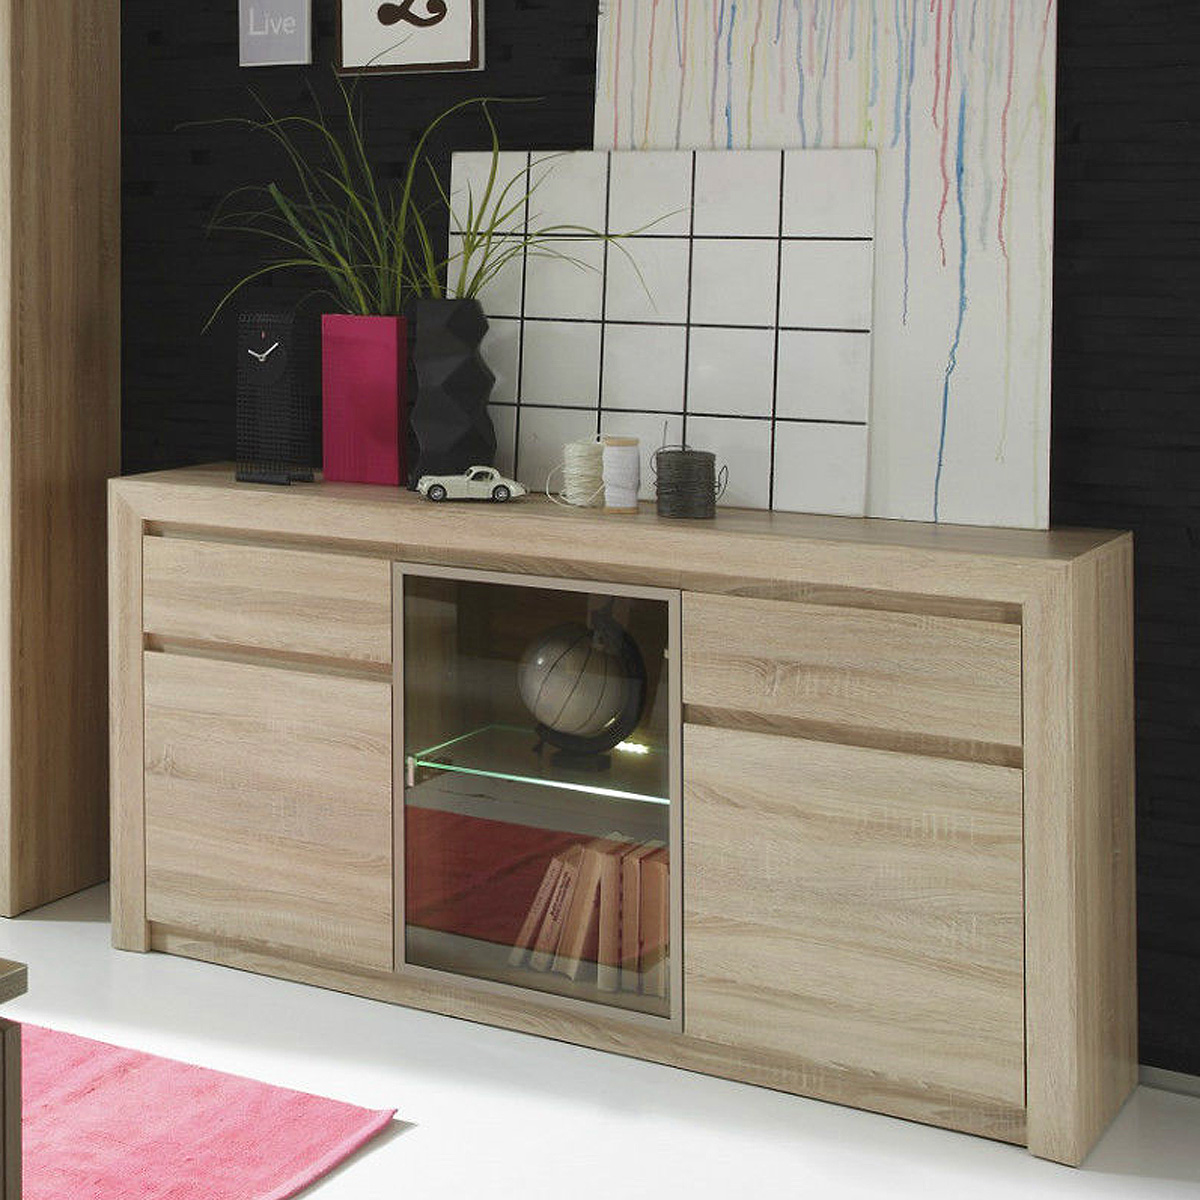 sideboard sevilla anrichte wohnzimmer schrank sonoma eiche glas bronze mit led ebay. Black Bedroom Furniture Sets. Home Design Ideas